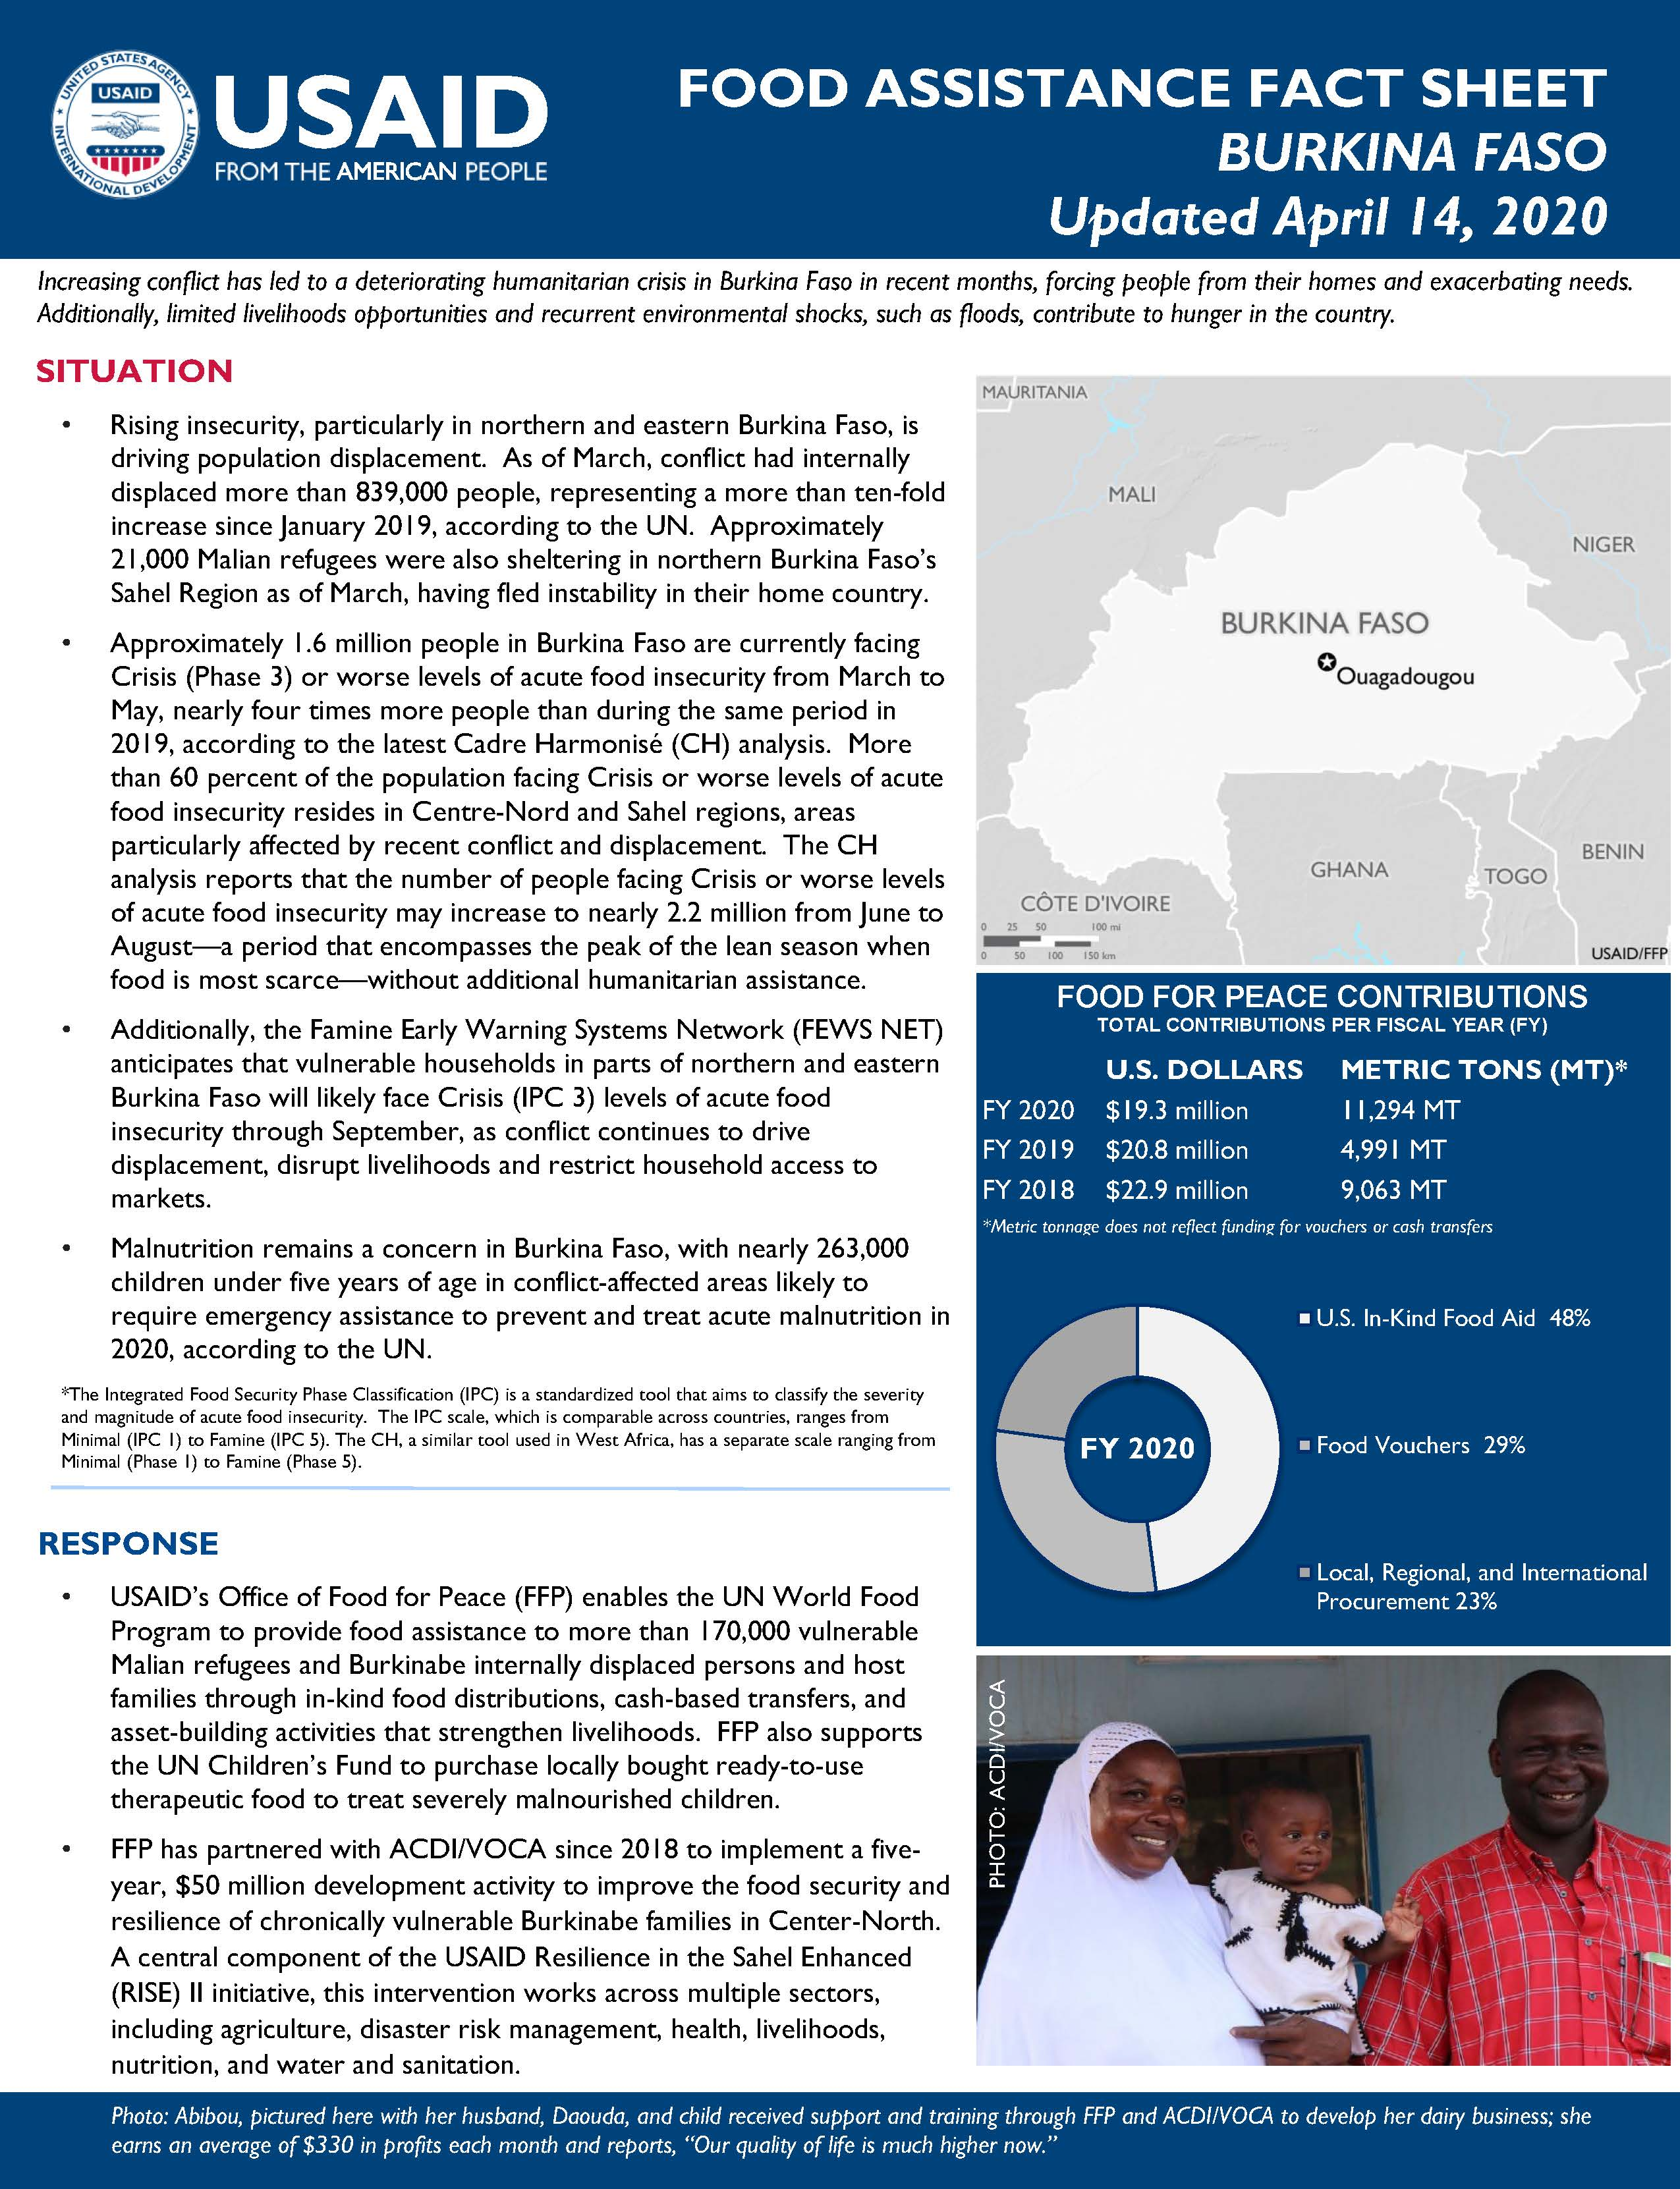 Food Assistance Fact Sheet - Burkina Faso